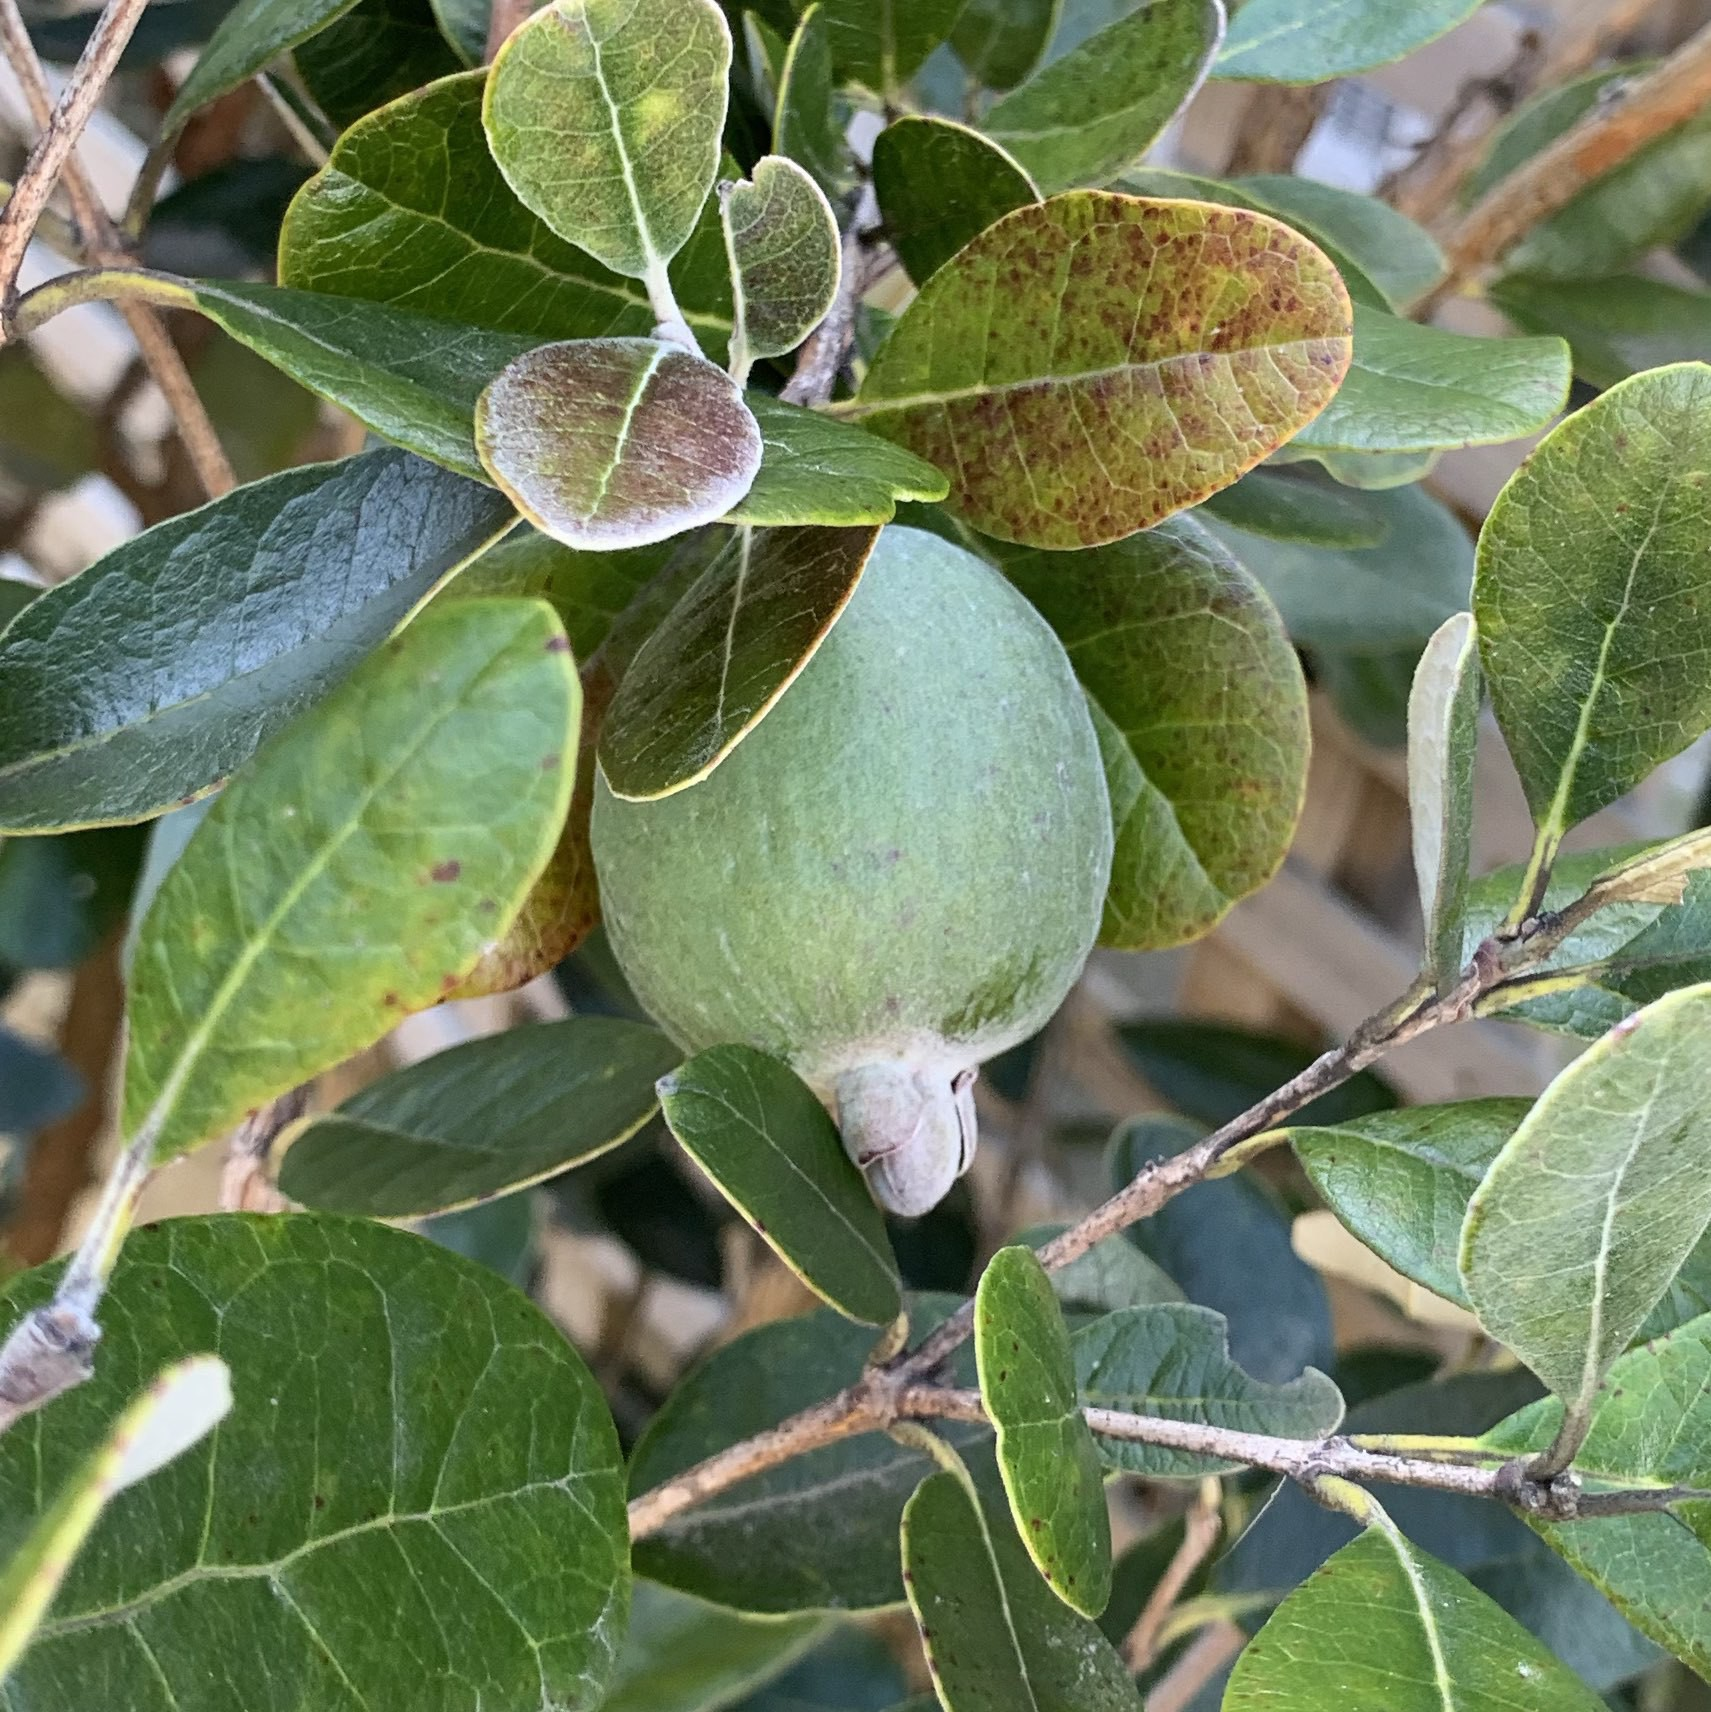 A feijoa, or pineapple guava, on the tree.